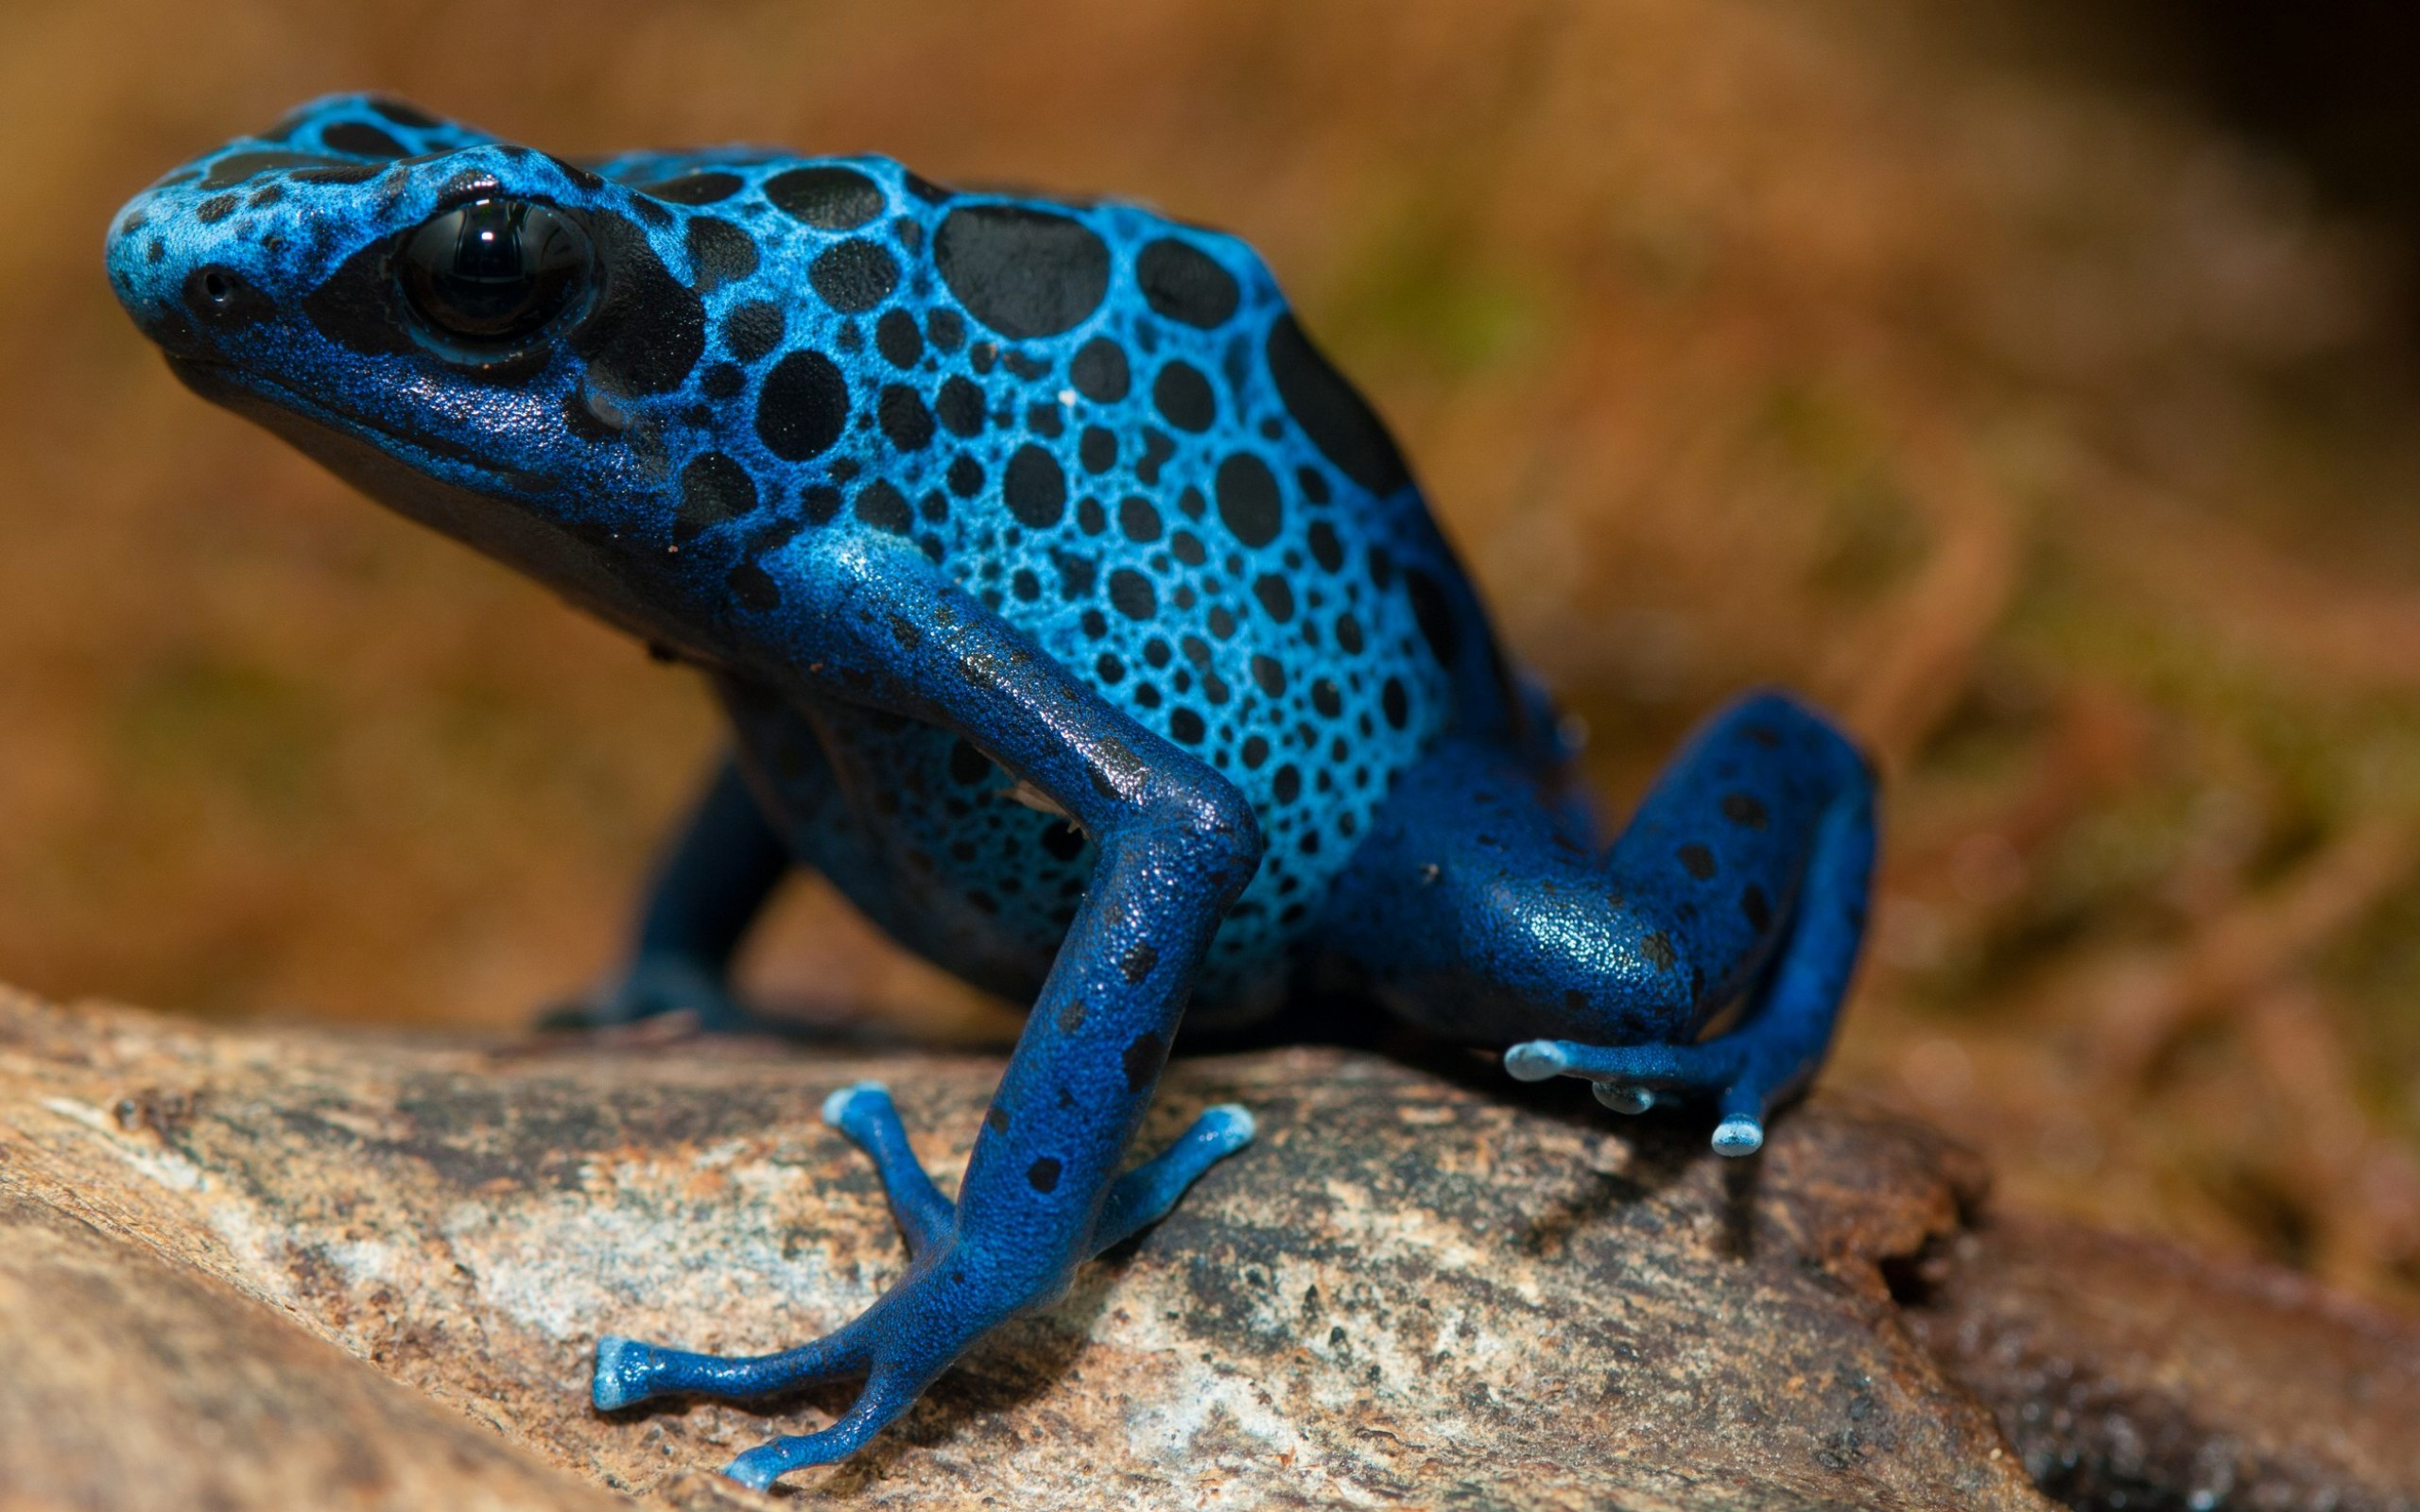 Poison dart frog Full HD Wallpaper and Background Image ...